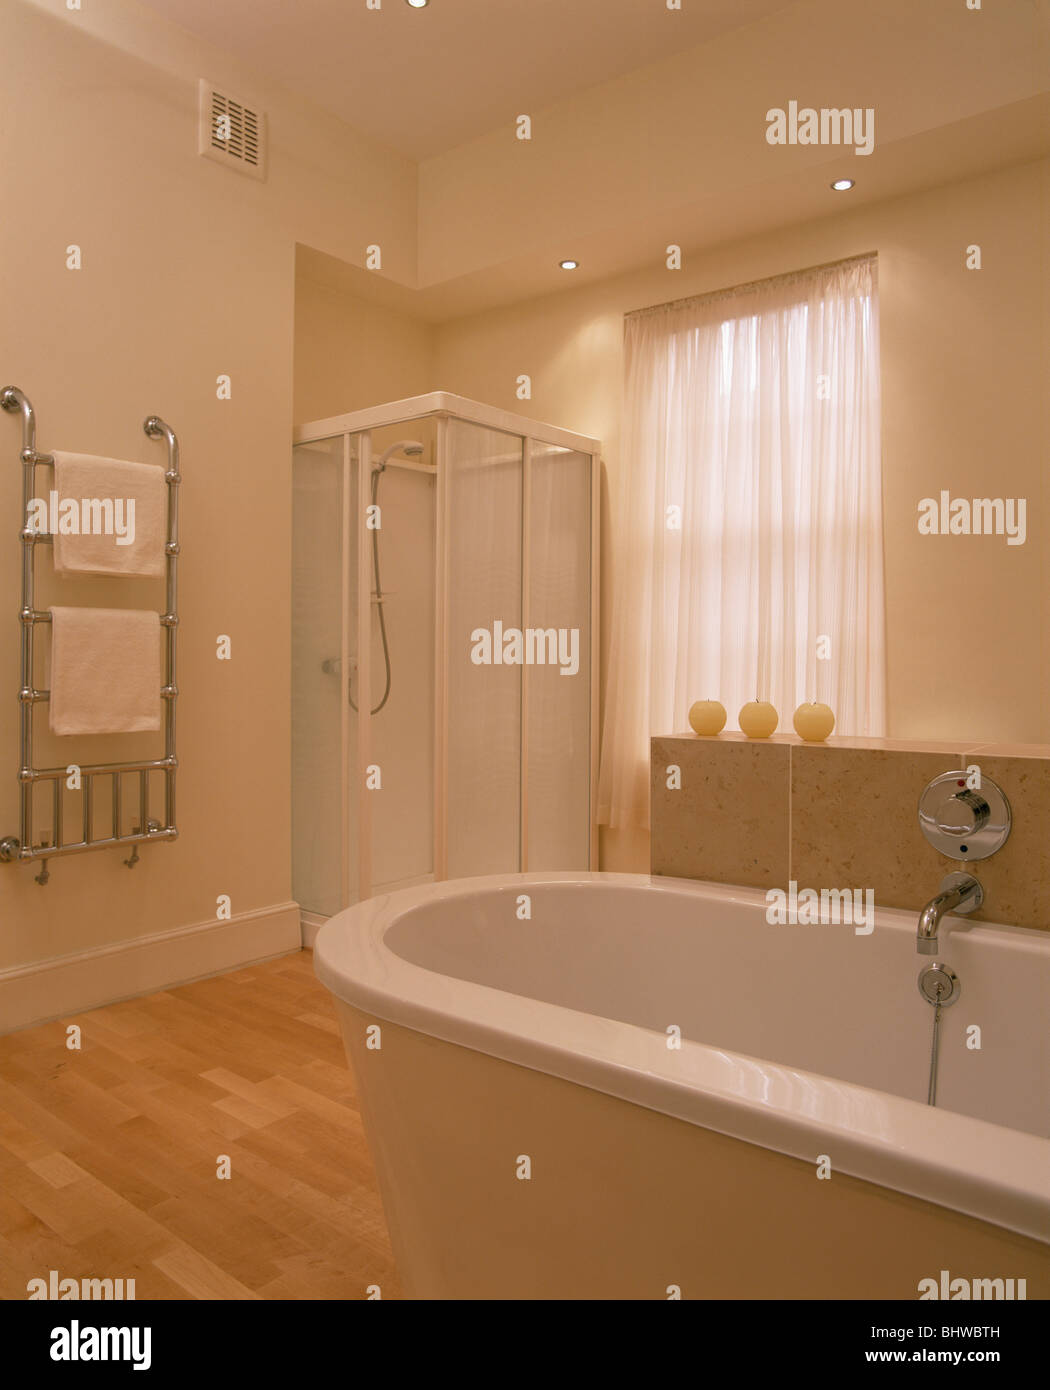 Shower Cabinet Stock Photos & Shower Cabinet Stock Images - Alamy